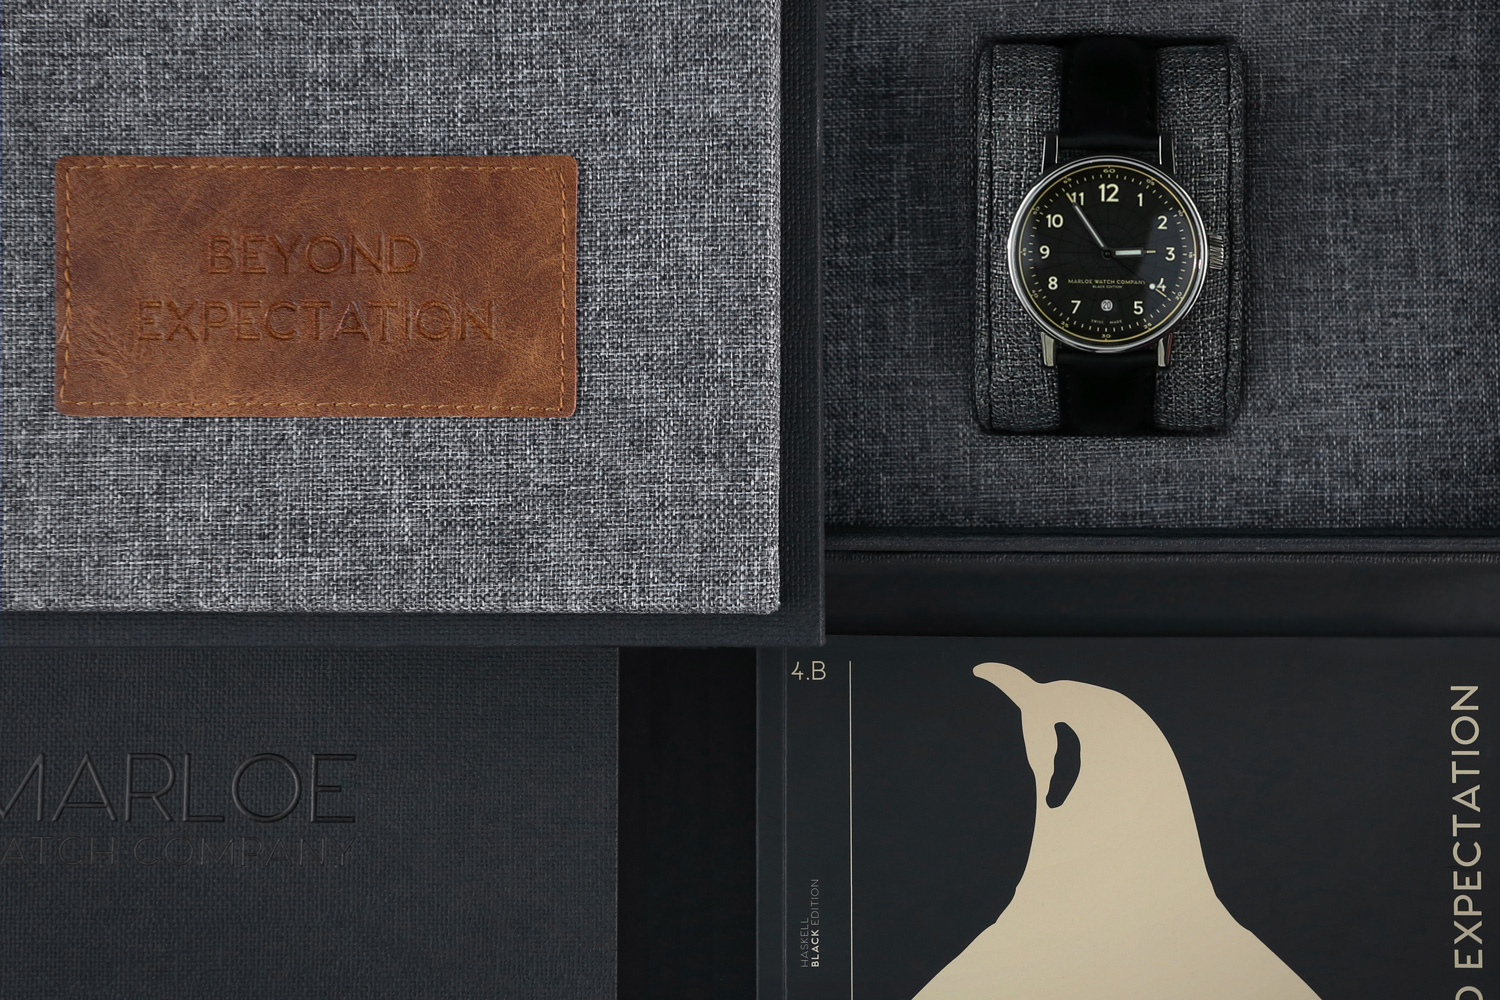 Progress Packaging Production Manufacture Luxury Brand Watch Box Timepiece Print Retail Fsc Approved Recyclable Eco Friendly Creative Premium Bespoke 5